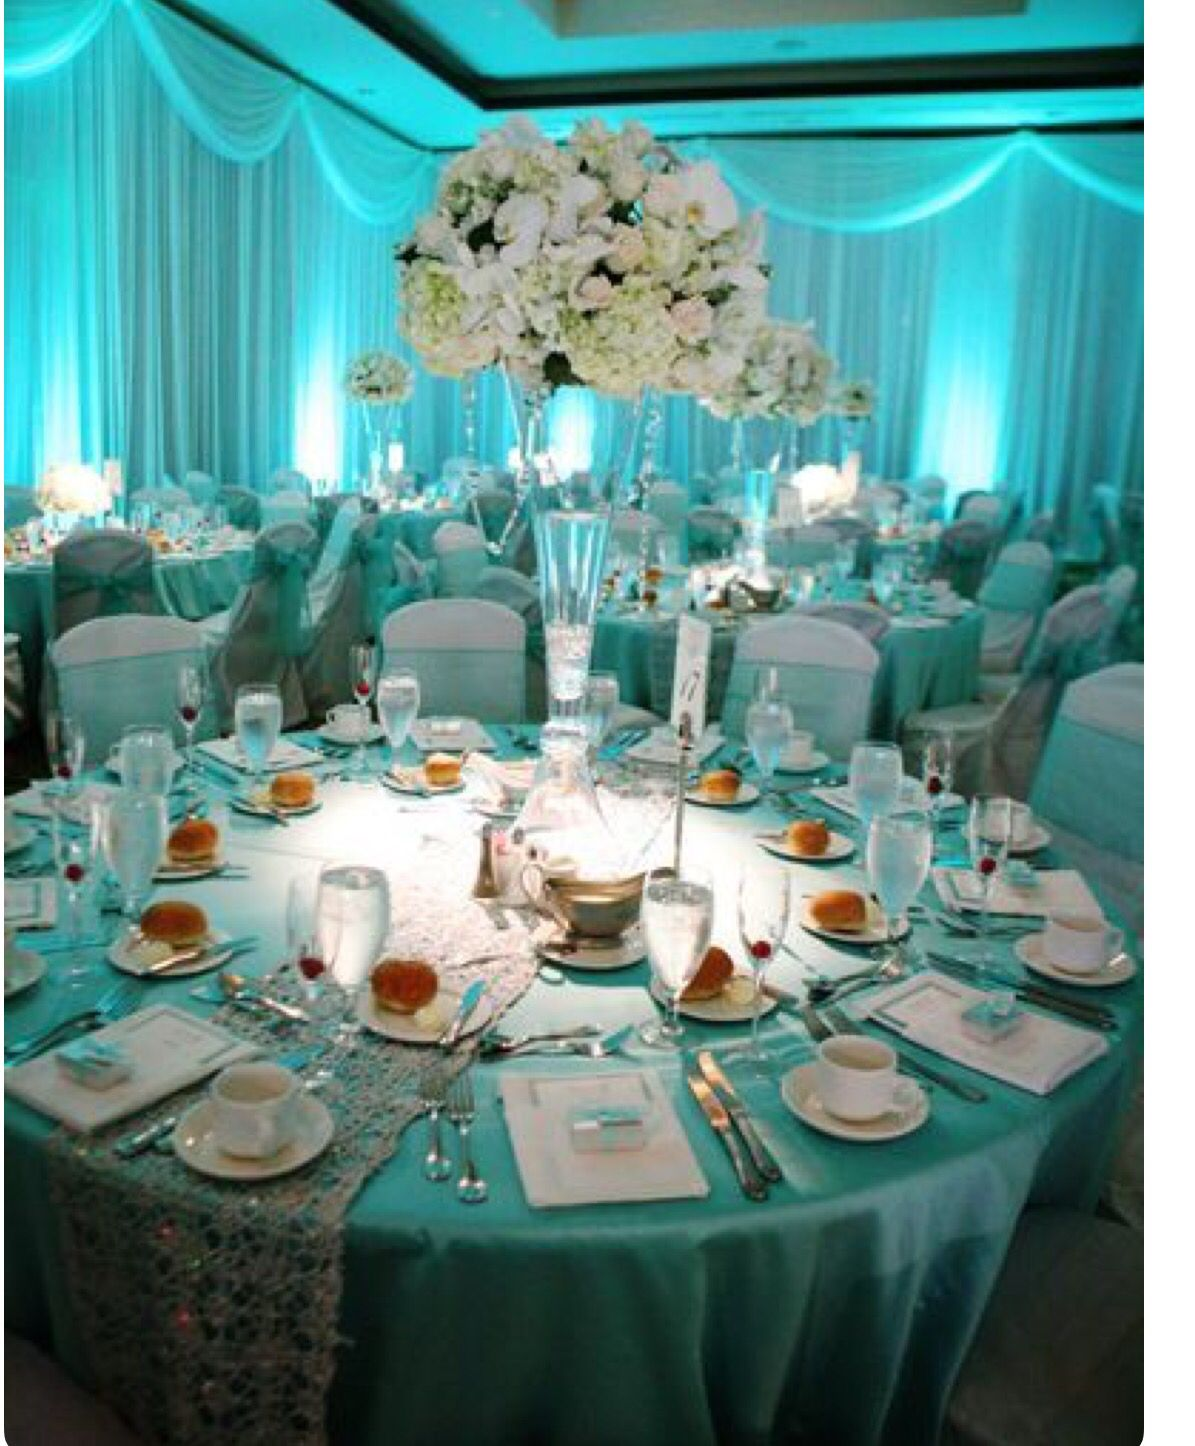 Tiffany Blue Setting Tiffany Blue Wedding Theme Blue Themed Wedding Tiffany Blue Wedding